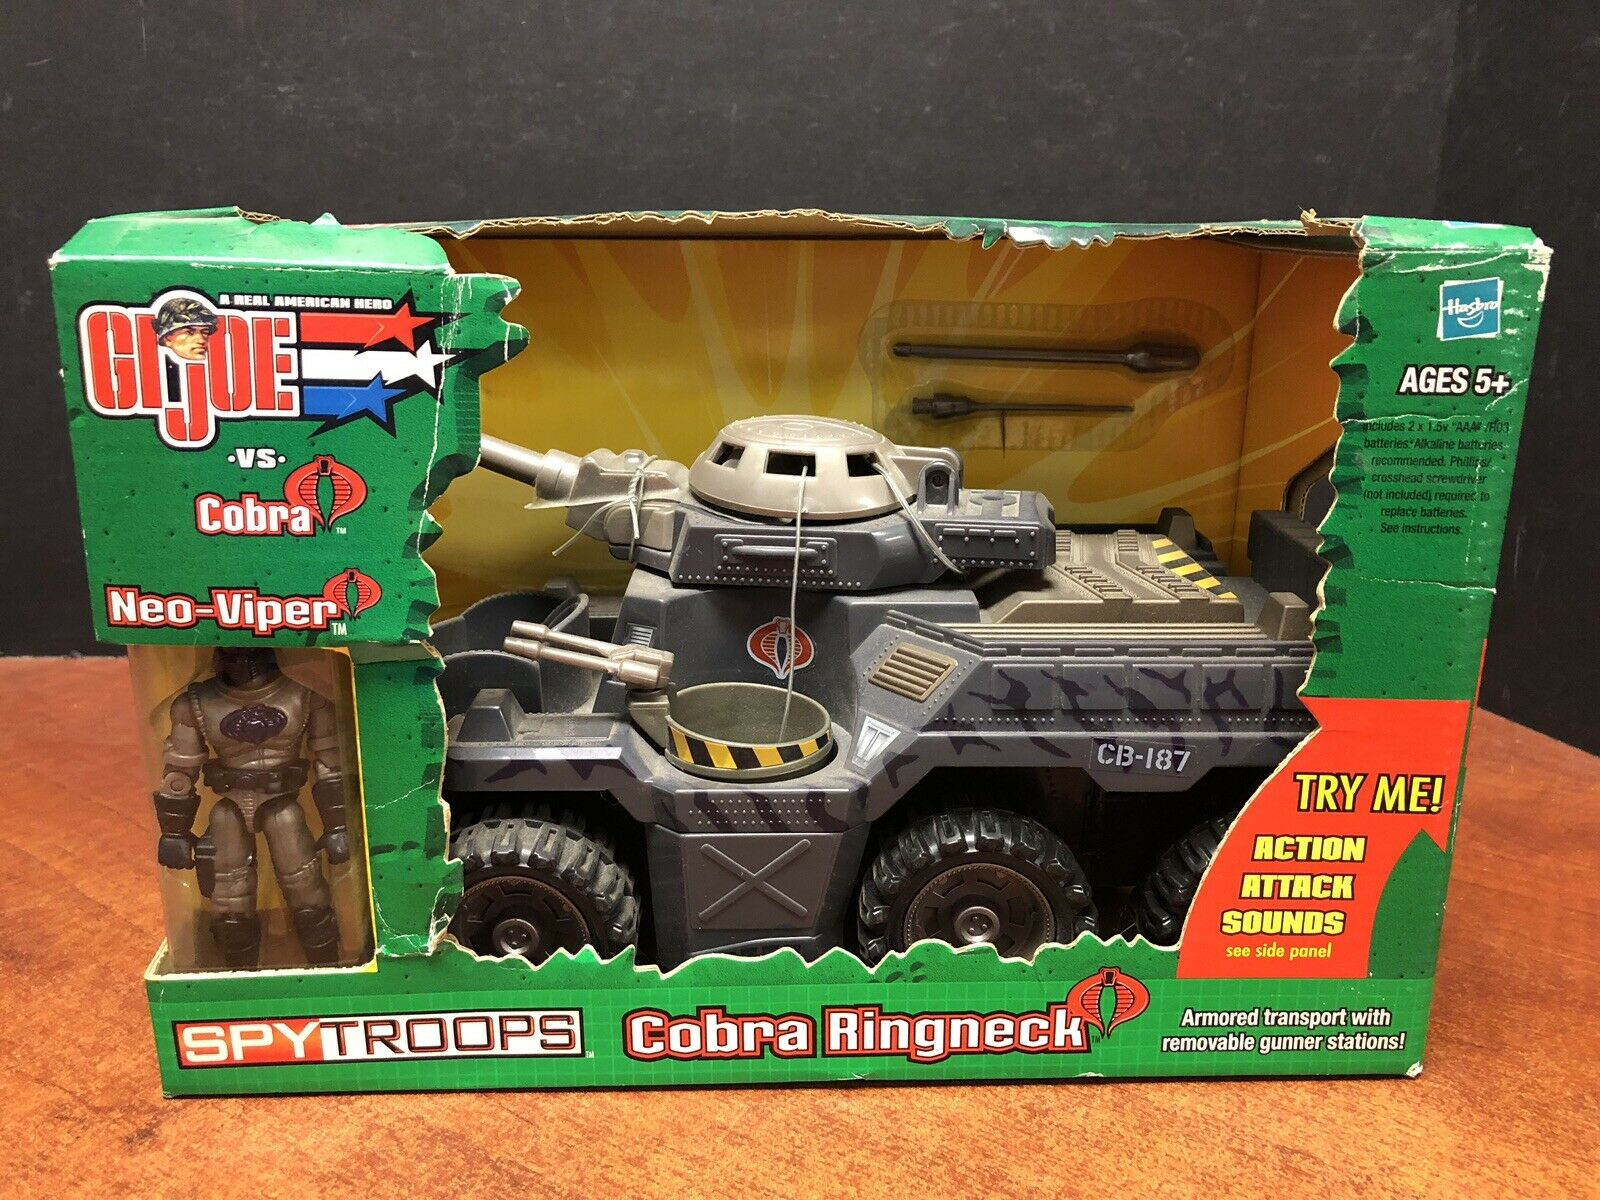 GI Joe Spy Troops Cobra Ringneck Dela1472